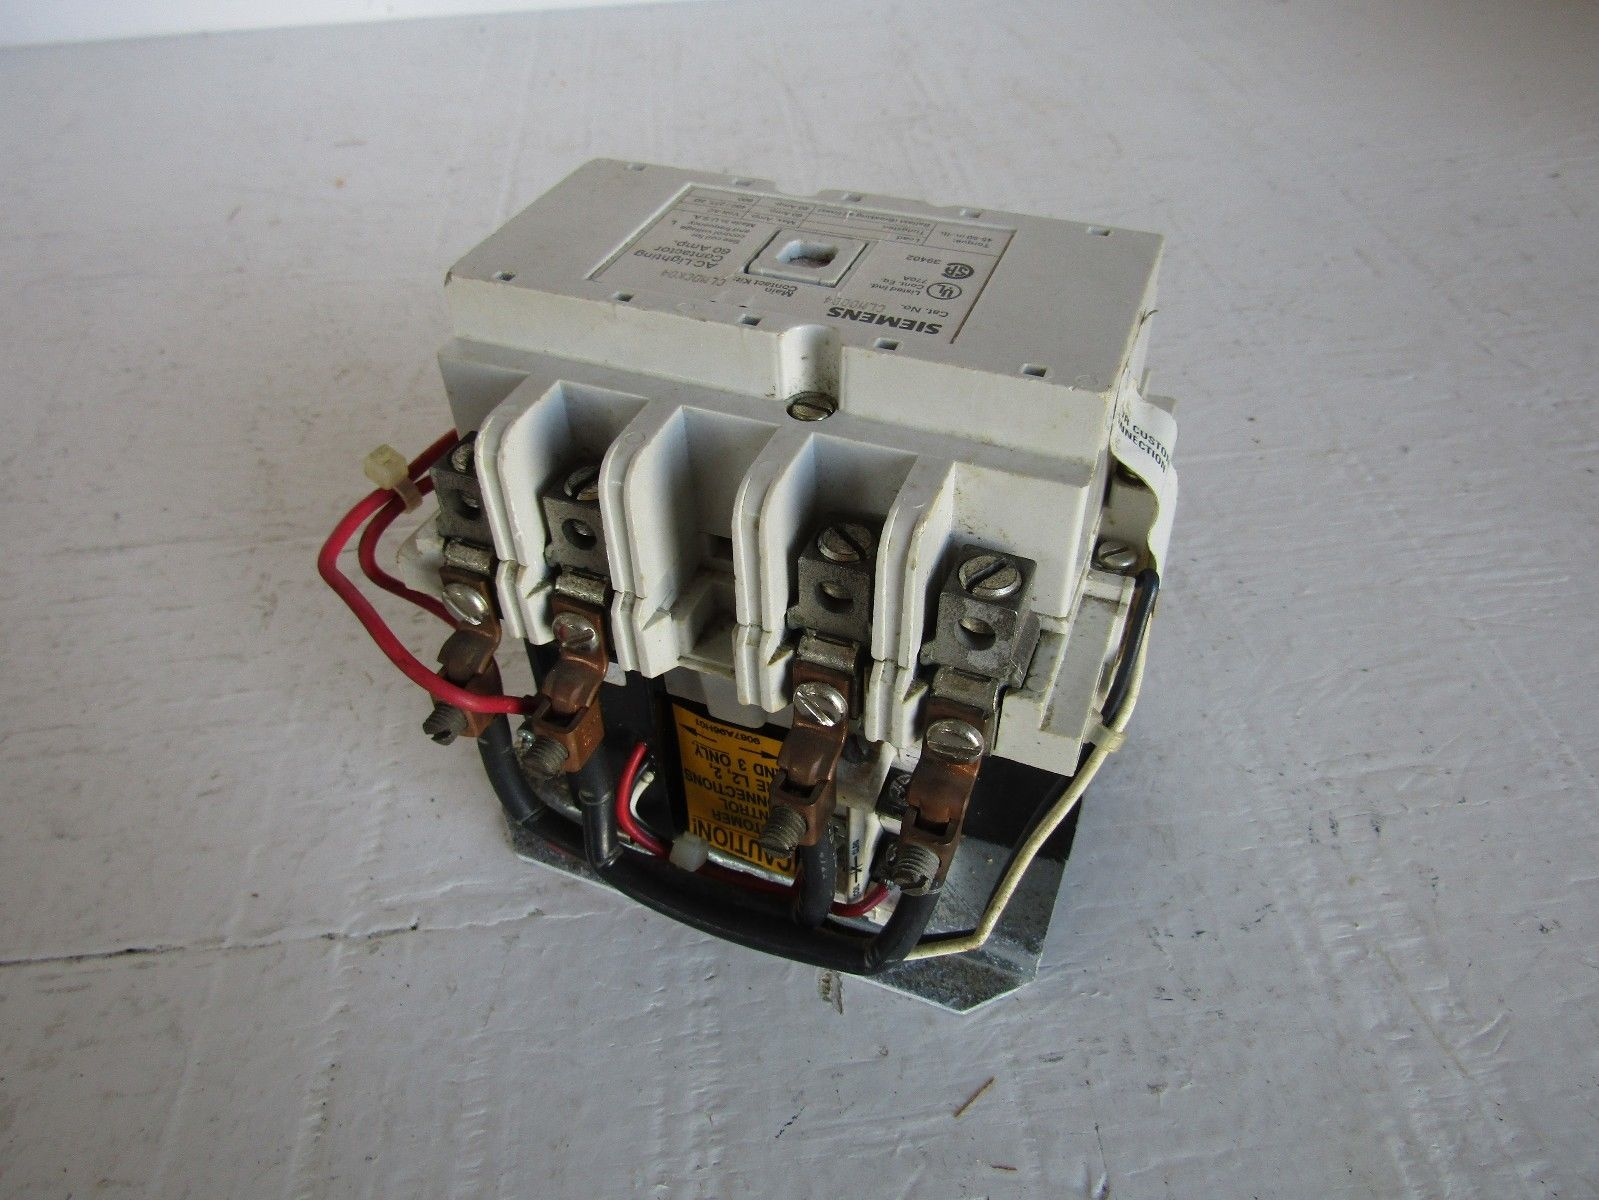 NEW SIEMENS CLM0D04 4 POLE 60A LIGHTING AND HEATING CONTACTOR 120V COIL 232036314545 3?fit=1000%2C750&ssl=1 siemens lighting contactor wiring diagram wiring diagram siemens clm lighting contactor wiring diagram at alyssarenee.co